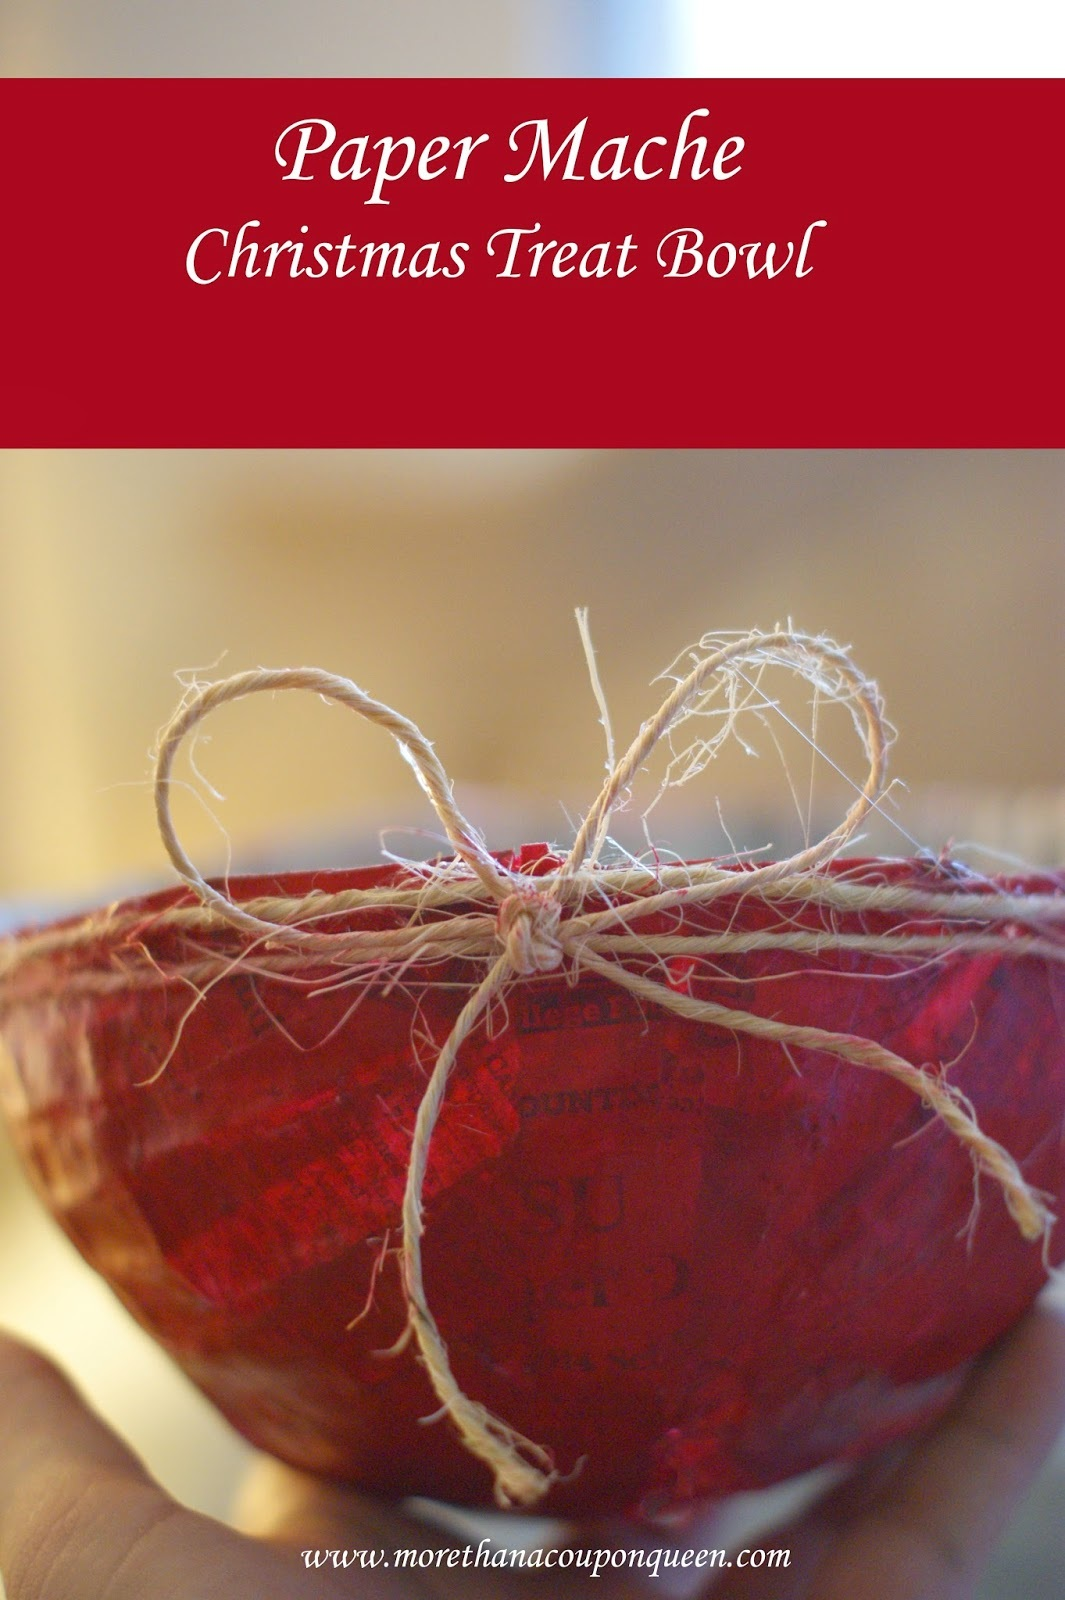 Paper Mache Christmas Treat Bowl Great Gift Idea!